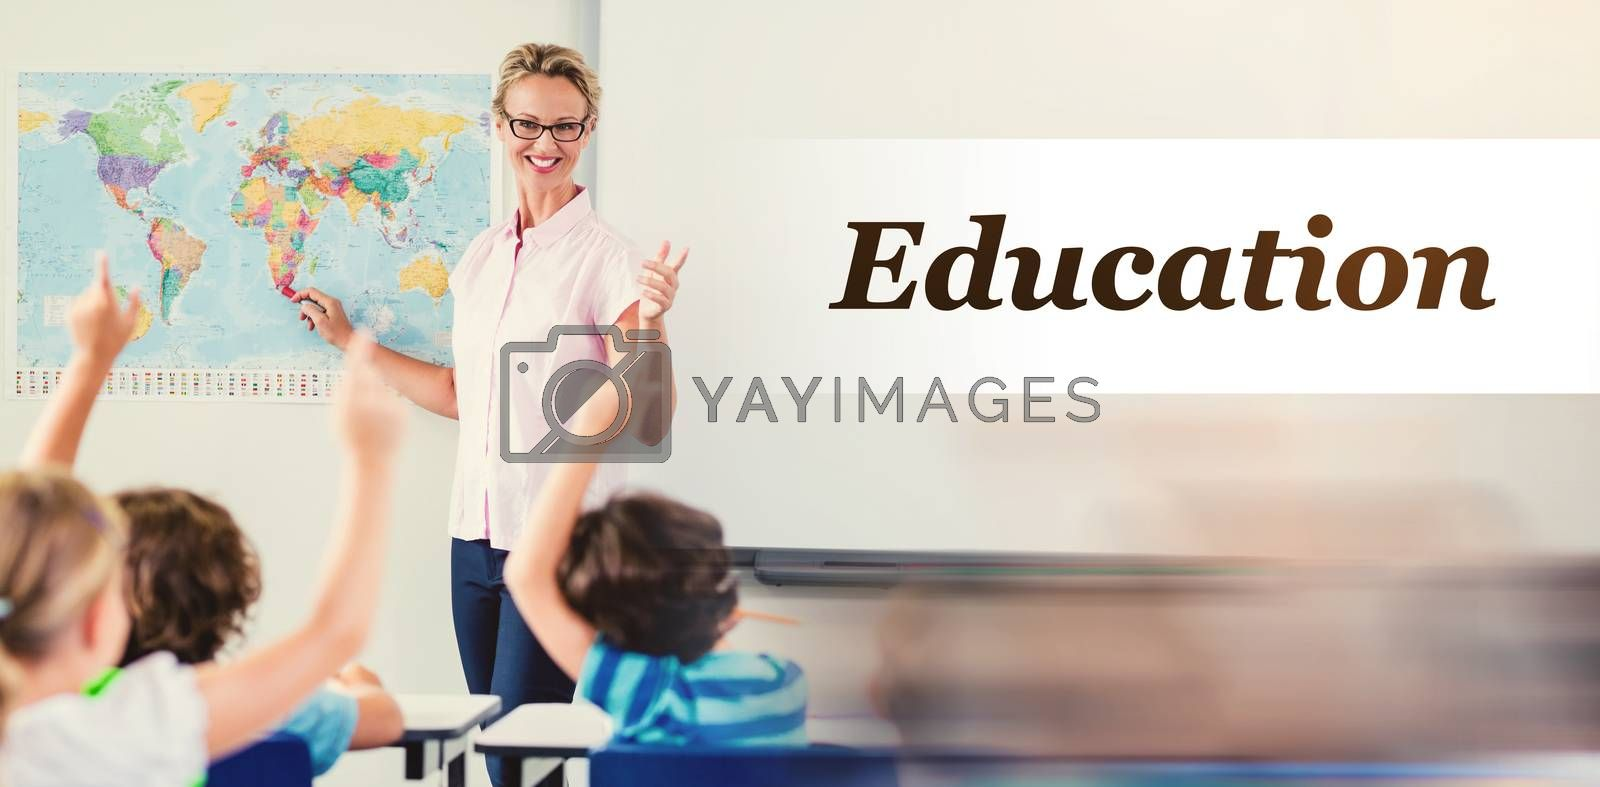 Digitally generated image of Education text  against teacher teaching kids in classroom